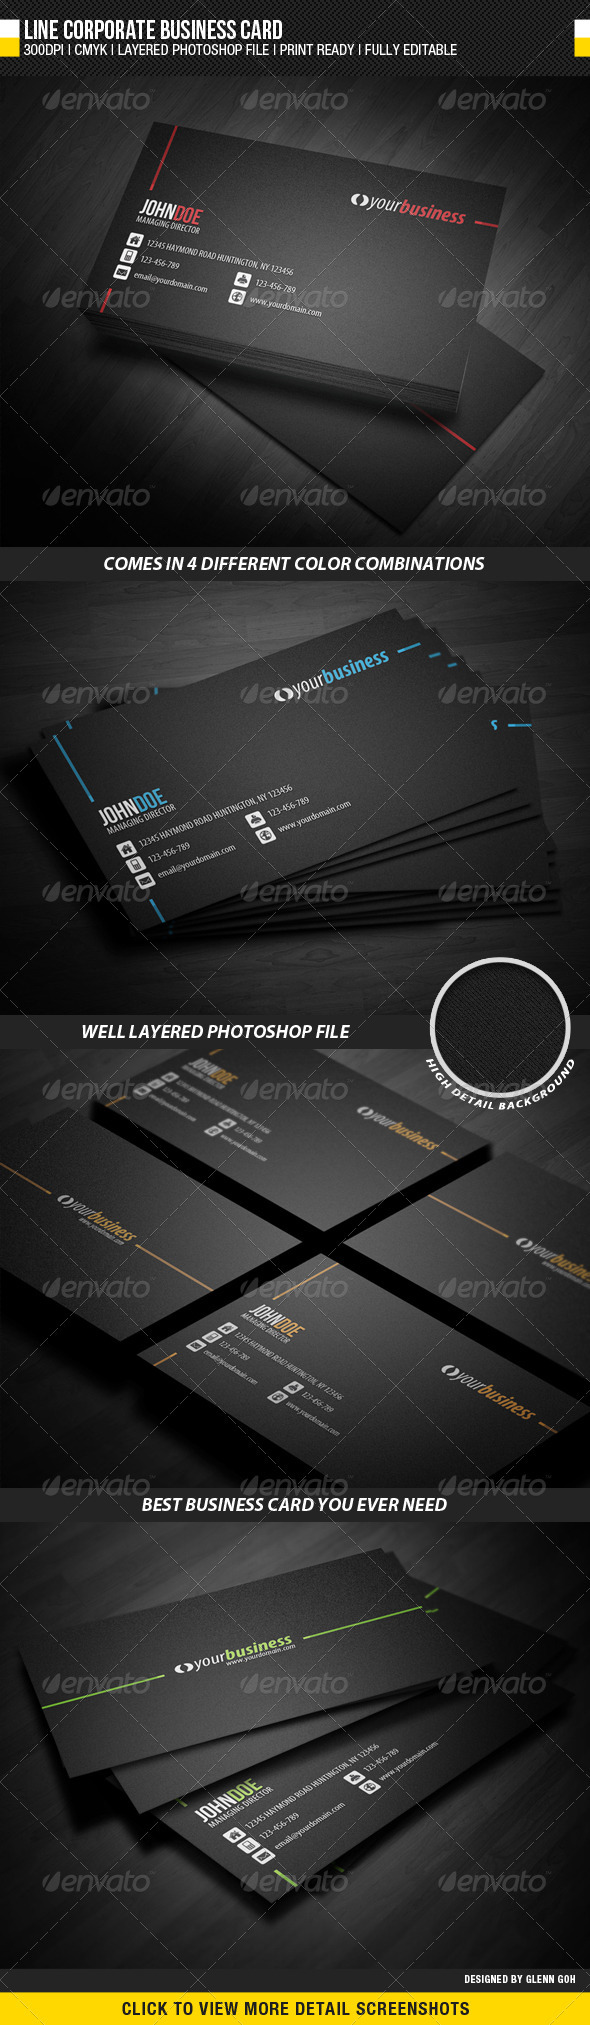 Line Corporate Business Card - Business Cards Print Templates